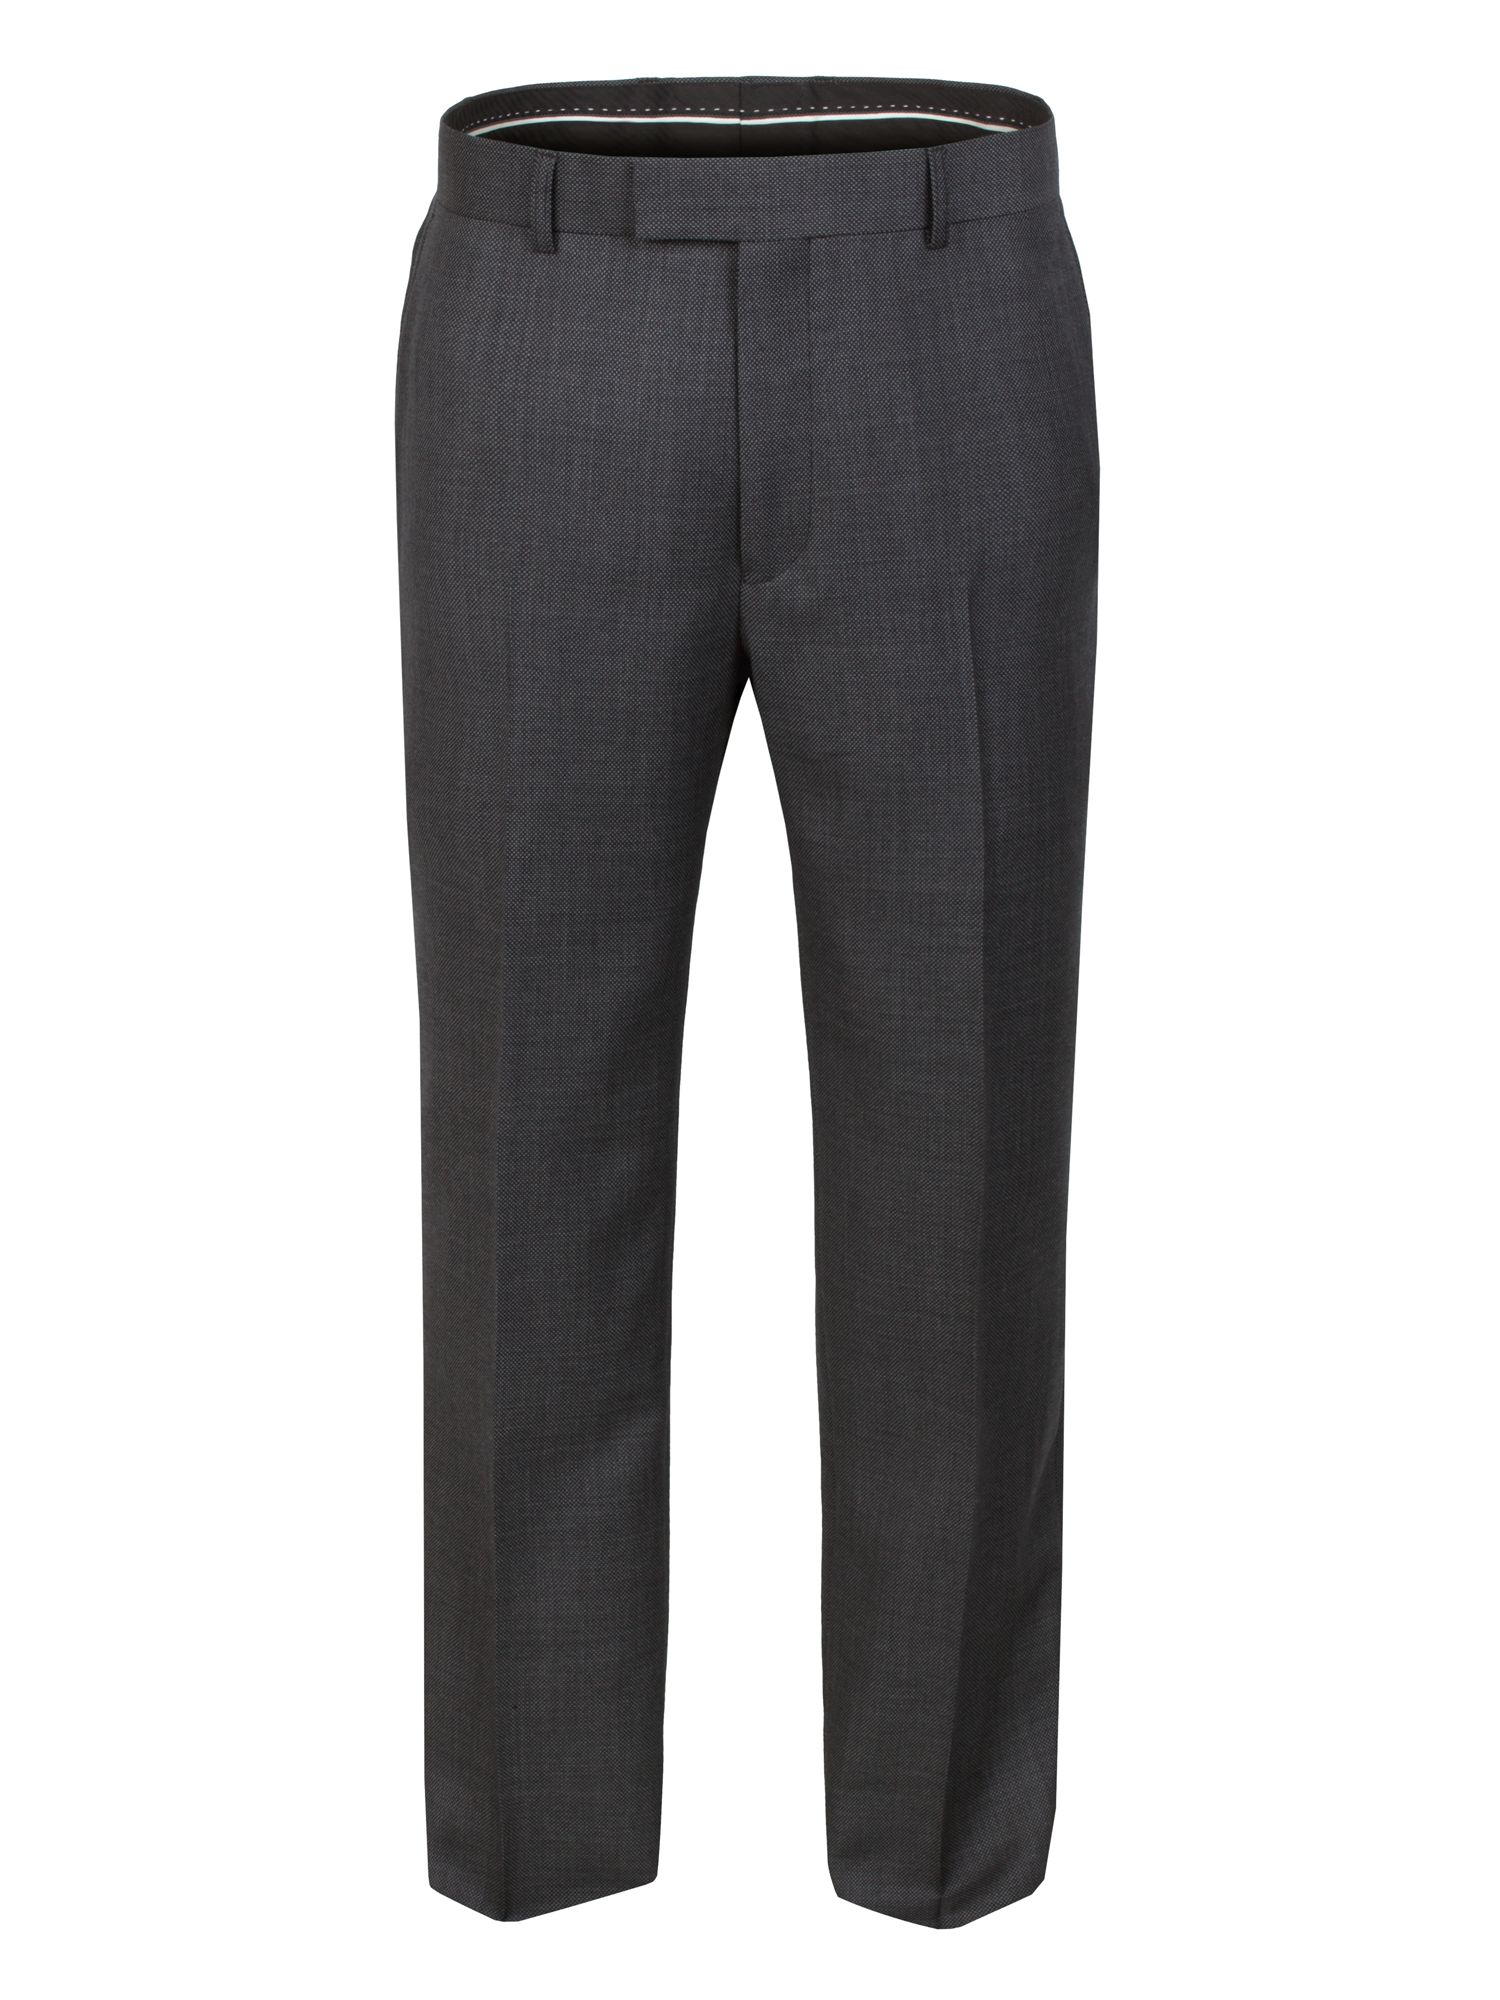 Grey Birdseye Trouser